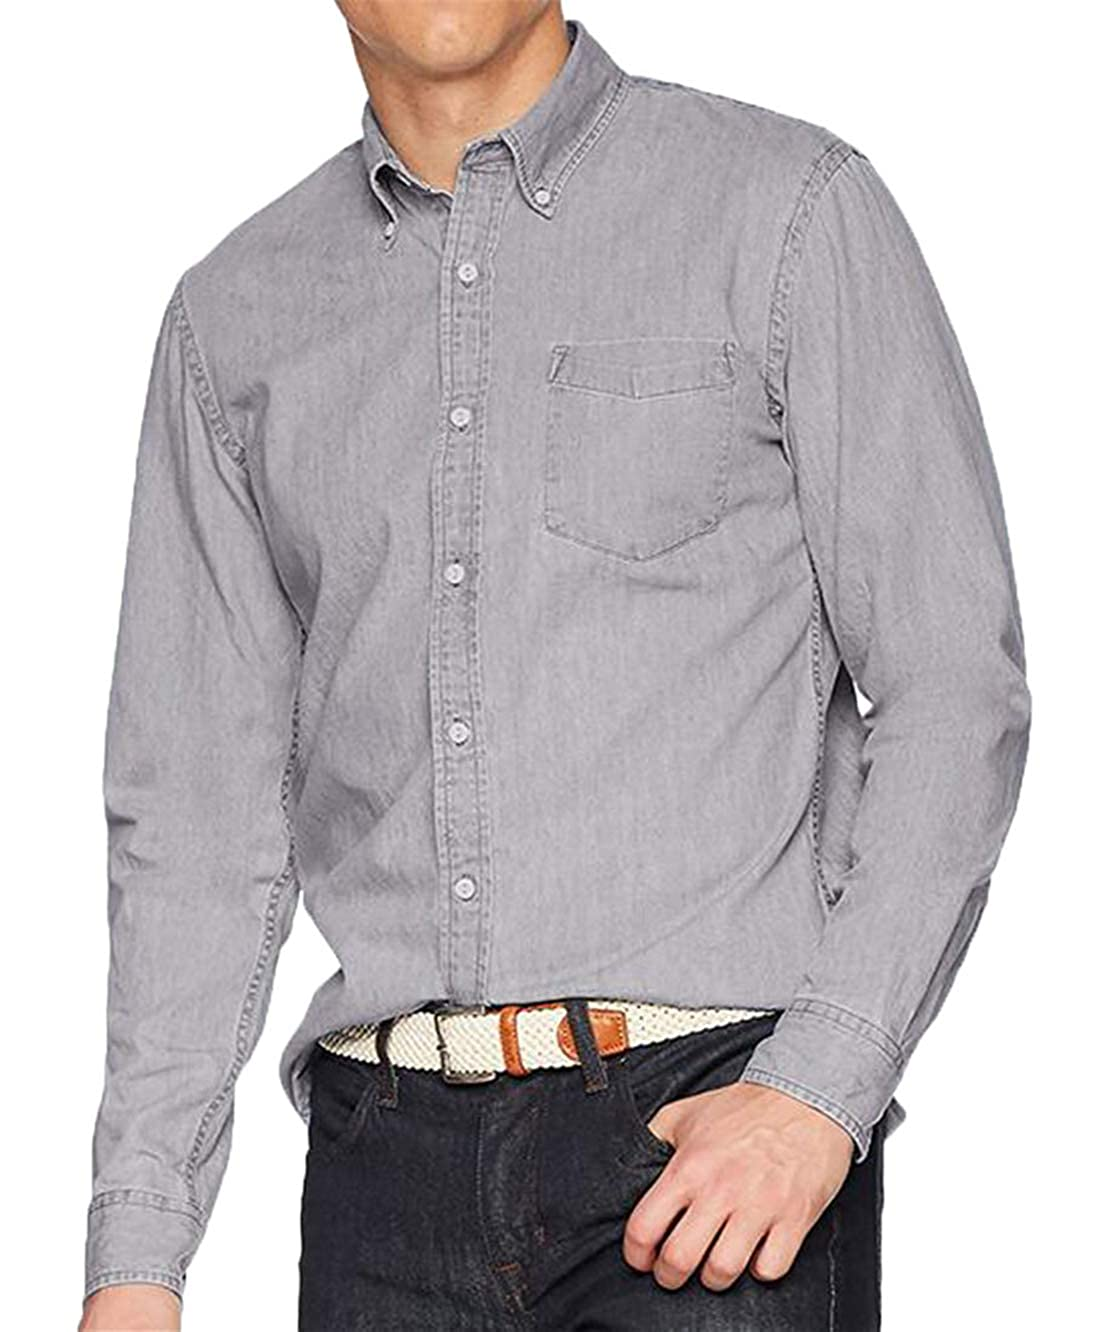 Twcx Mens Stylish Long Sleeve Denim Cotton Pocket Button Down Casual Shirt Workshirt